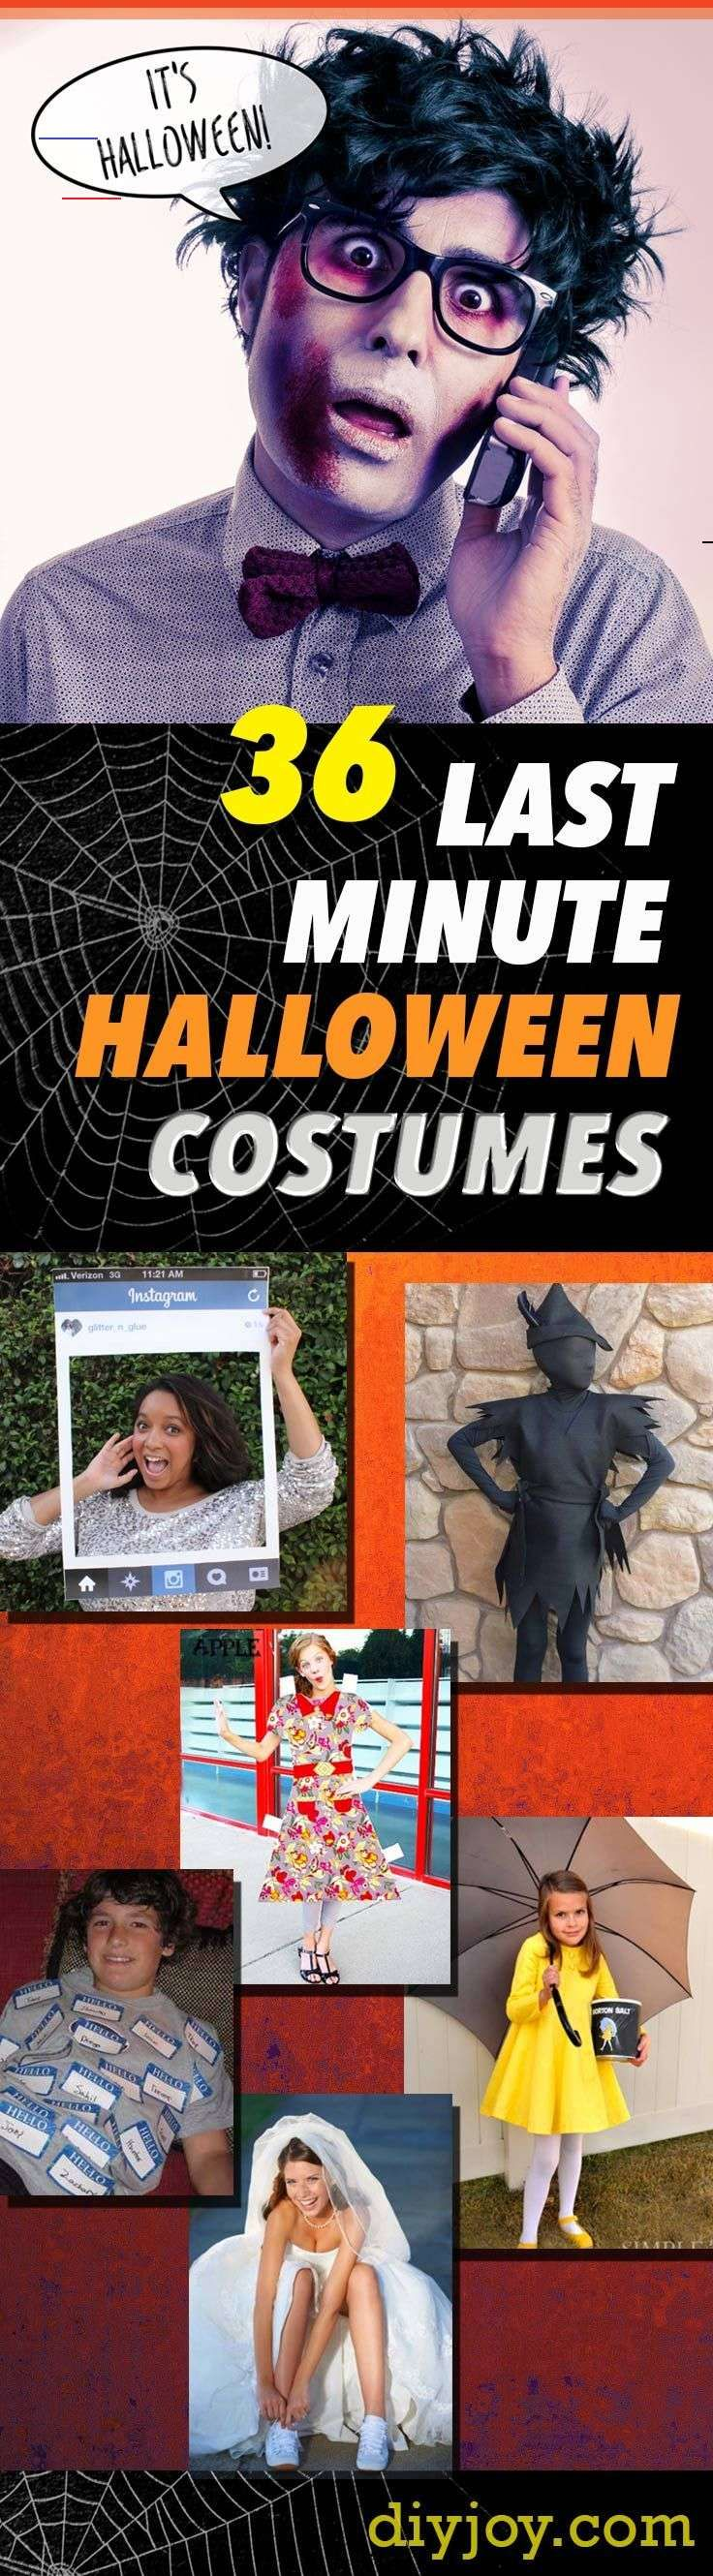 Last Minute Halloween Costumes -Quick Ideas for Couples, Kids, Babies, Men and Women - Cool DIY Halloween Costume Ideas Last Minute Halloween Costumes -Quick Ideas for Couples, Kids, Babies, Men and Women - Cool DIY Halloween Costume Ideas